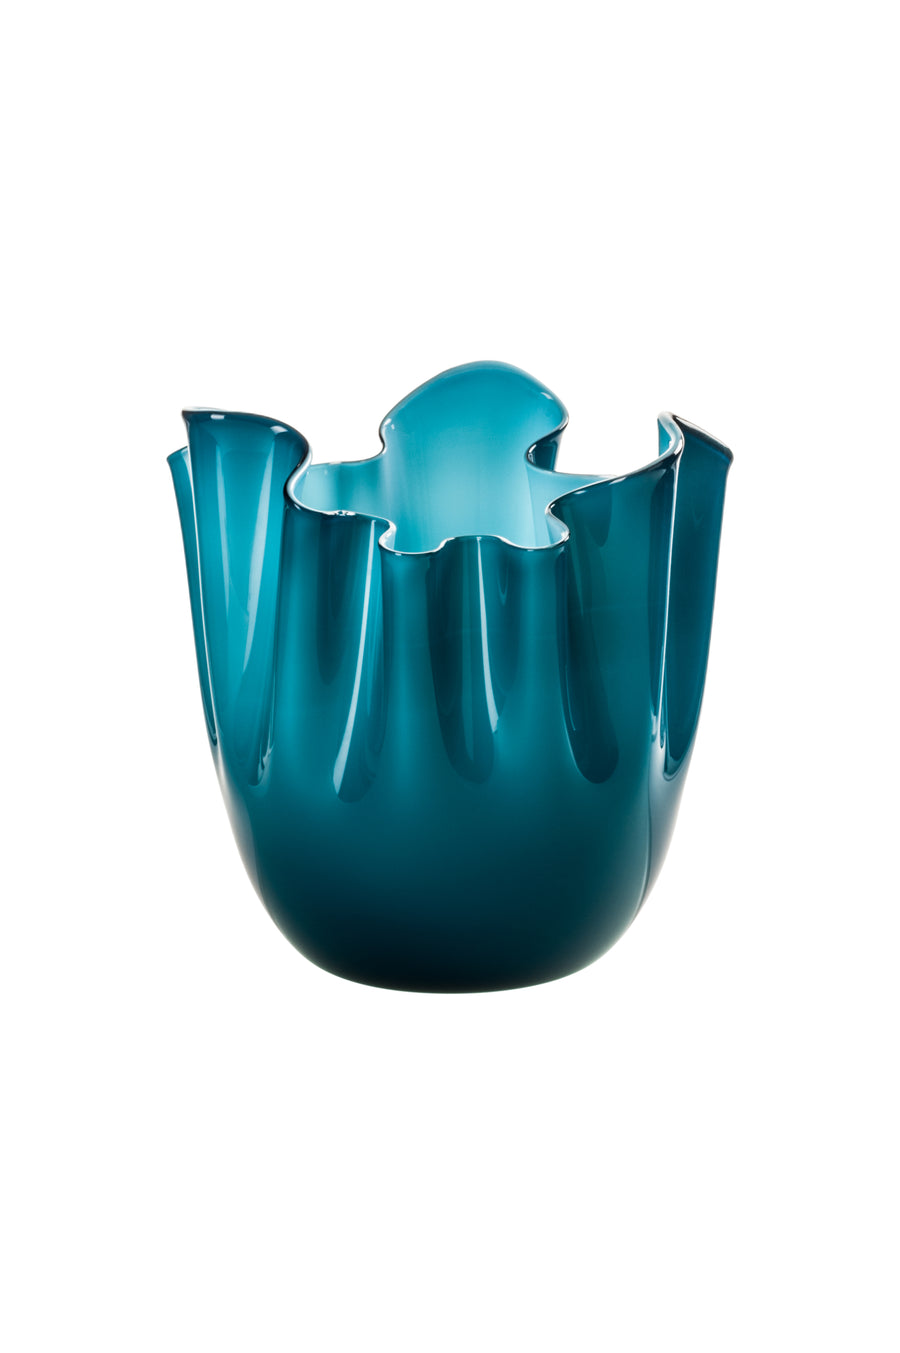 FAZZOLETTO Glass Vase by Fulvio Bianconi and Paolo Venini for Venini - DUPLEX DESIGN